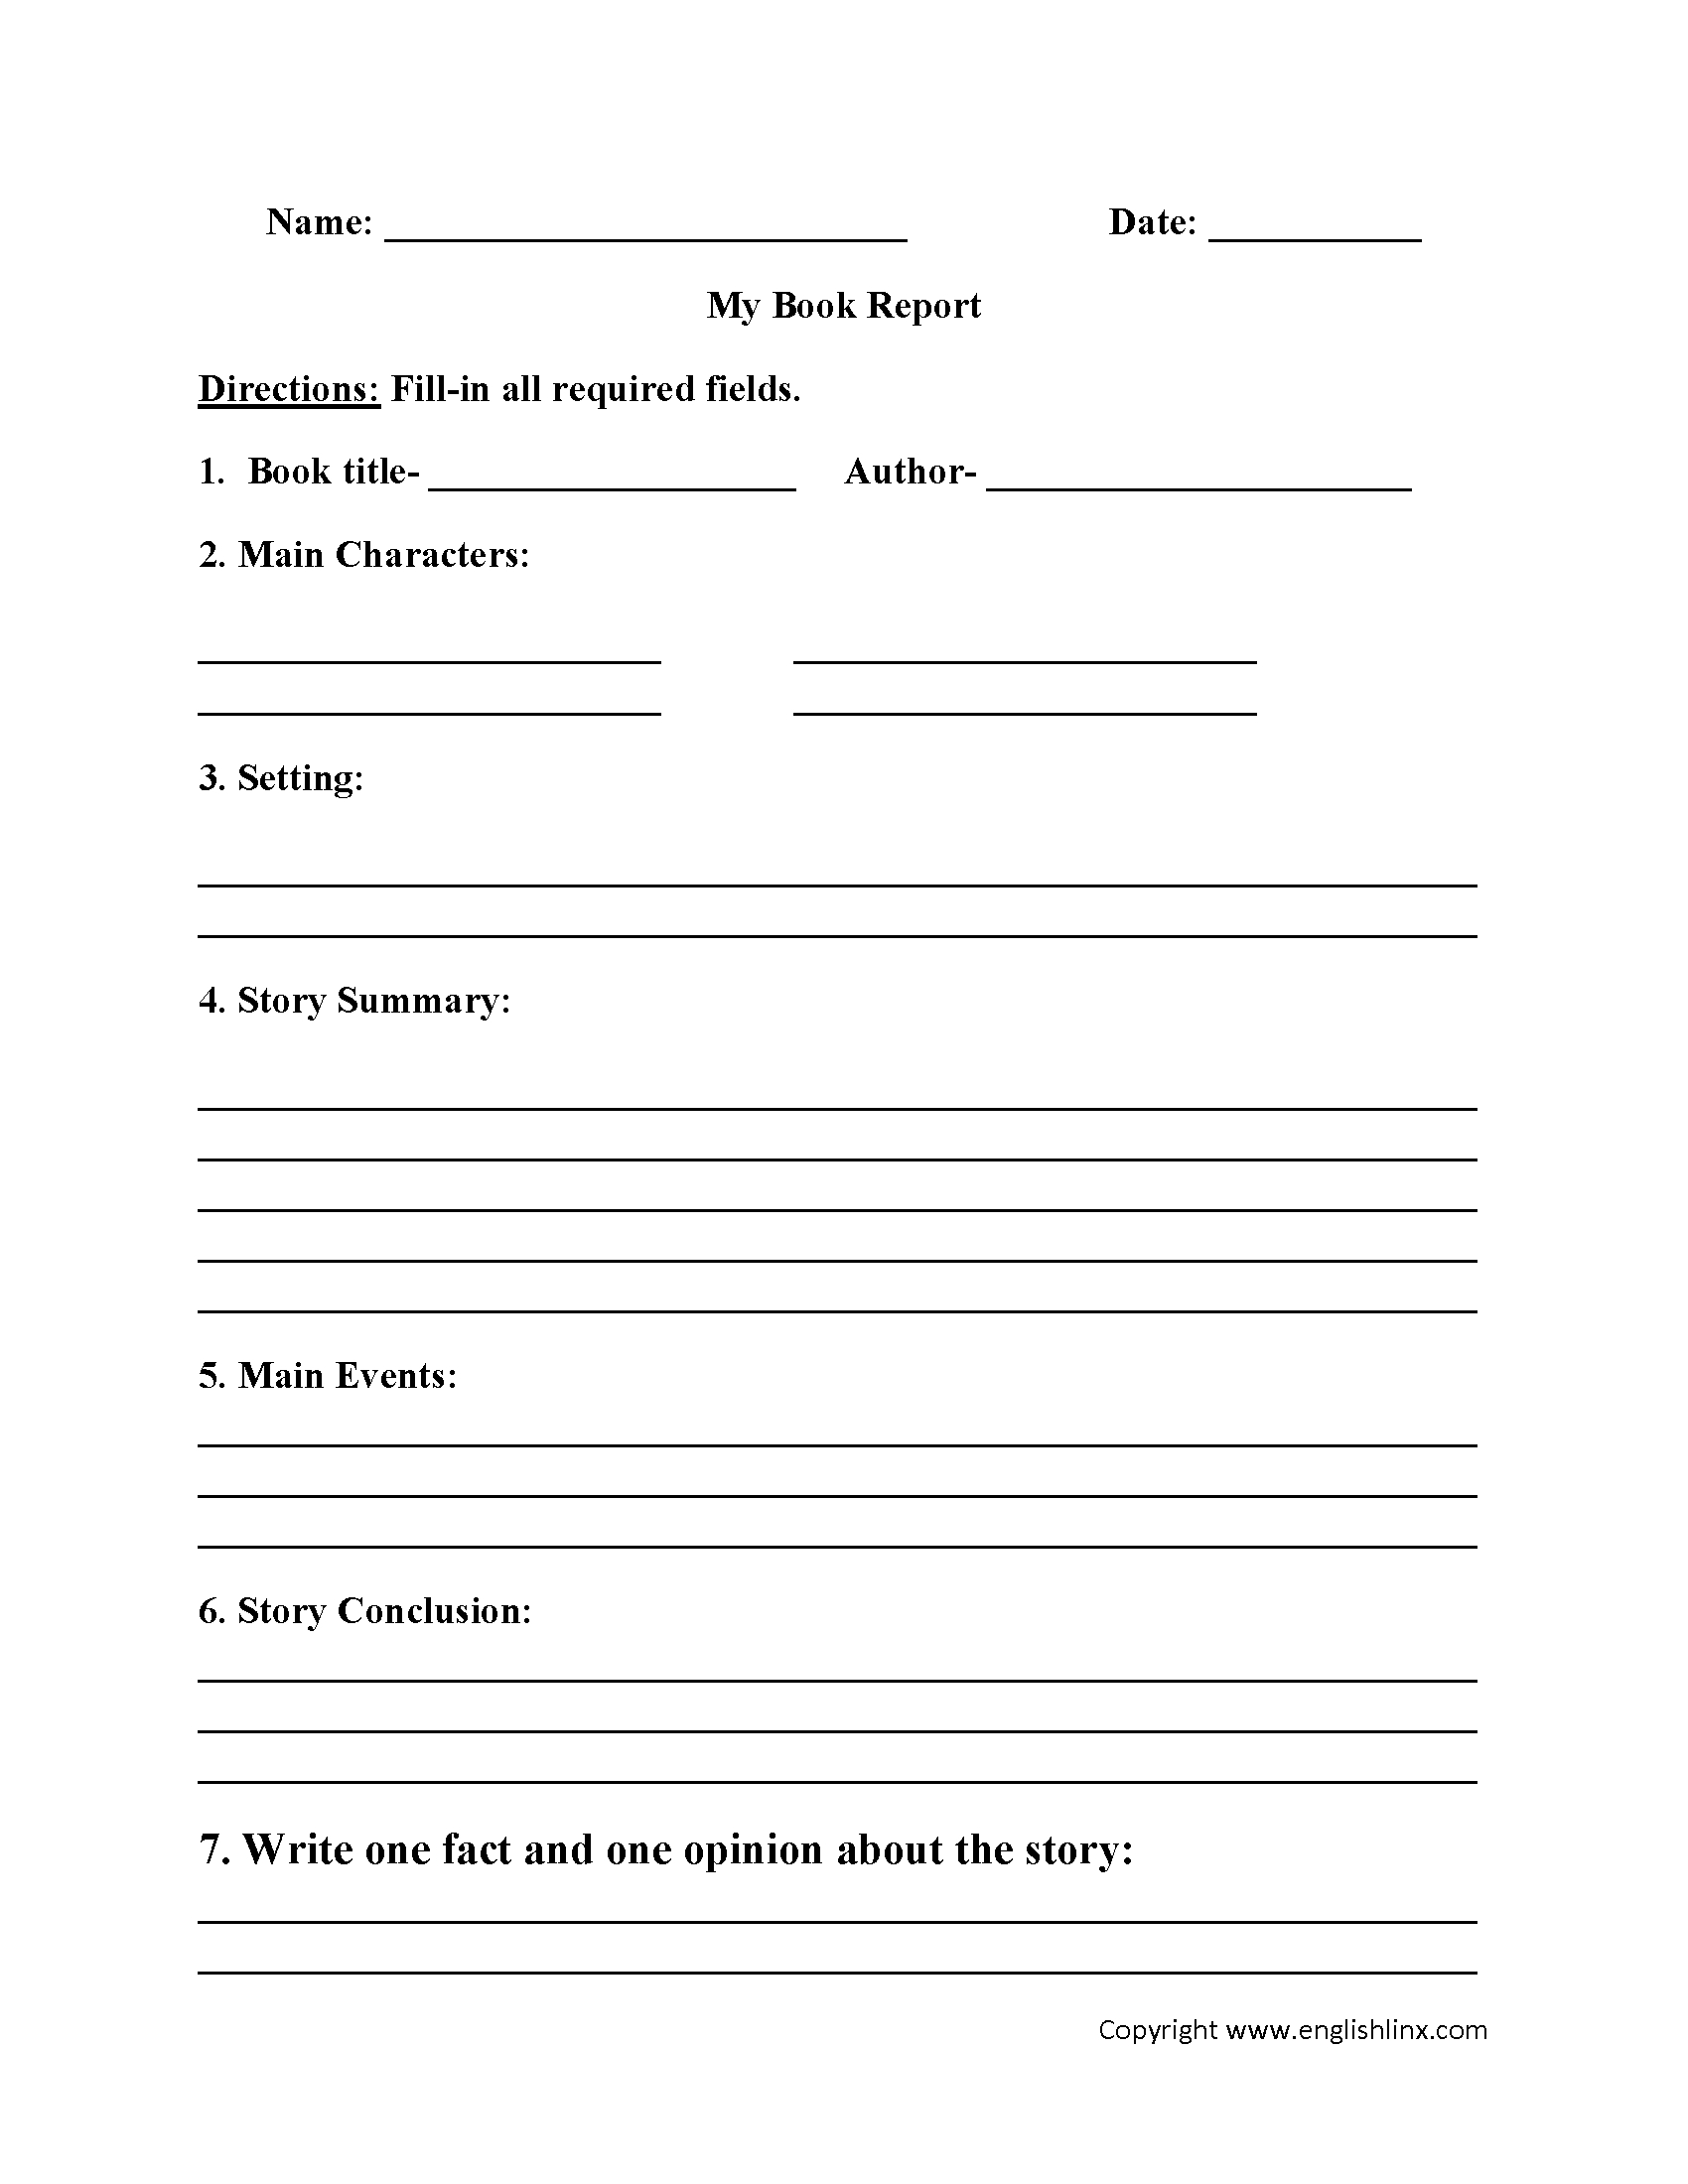 Englishlinx | Book Report Worksheets Intended For 6Th Grade Book Report Template